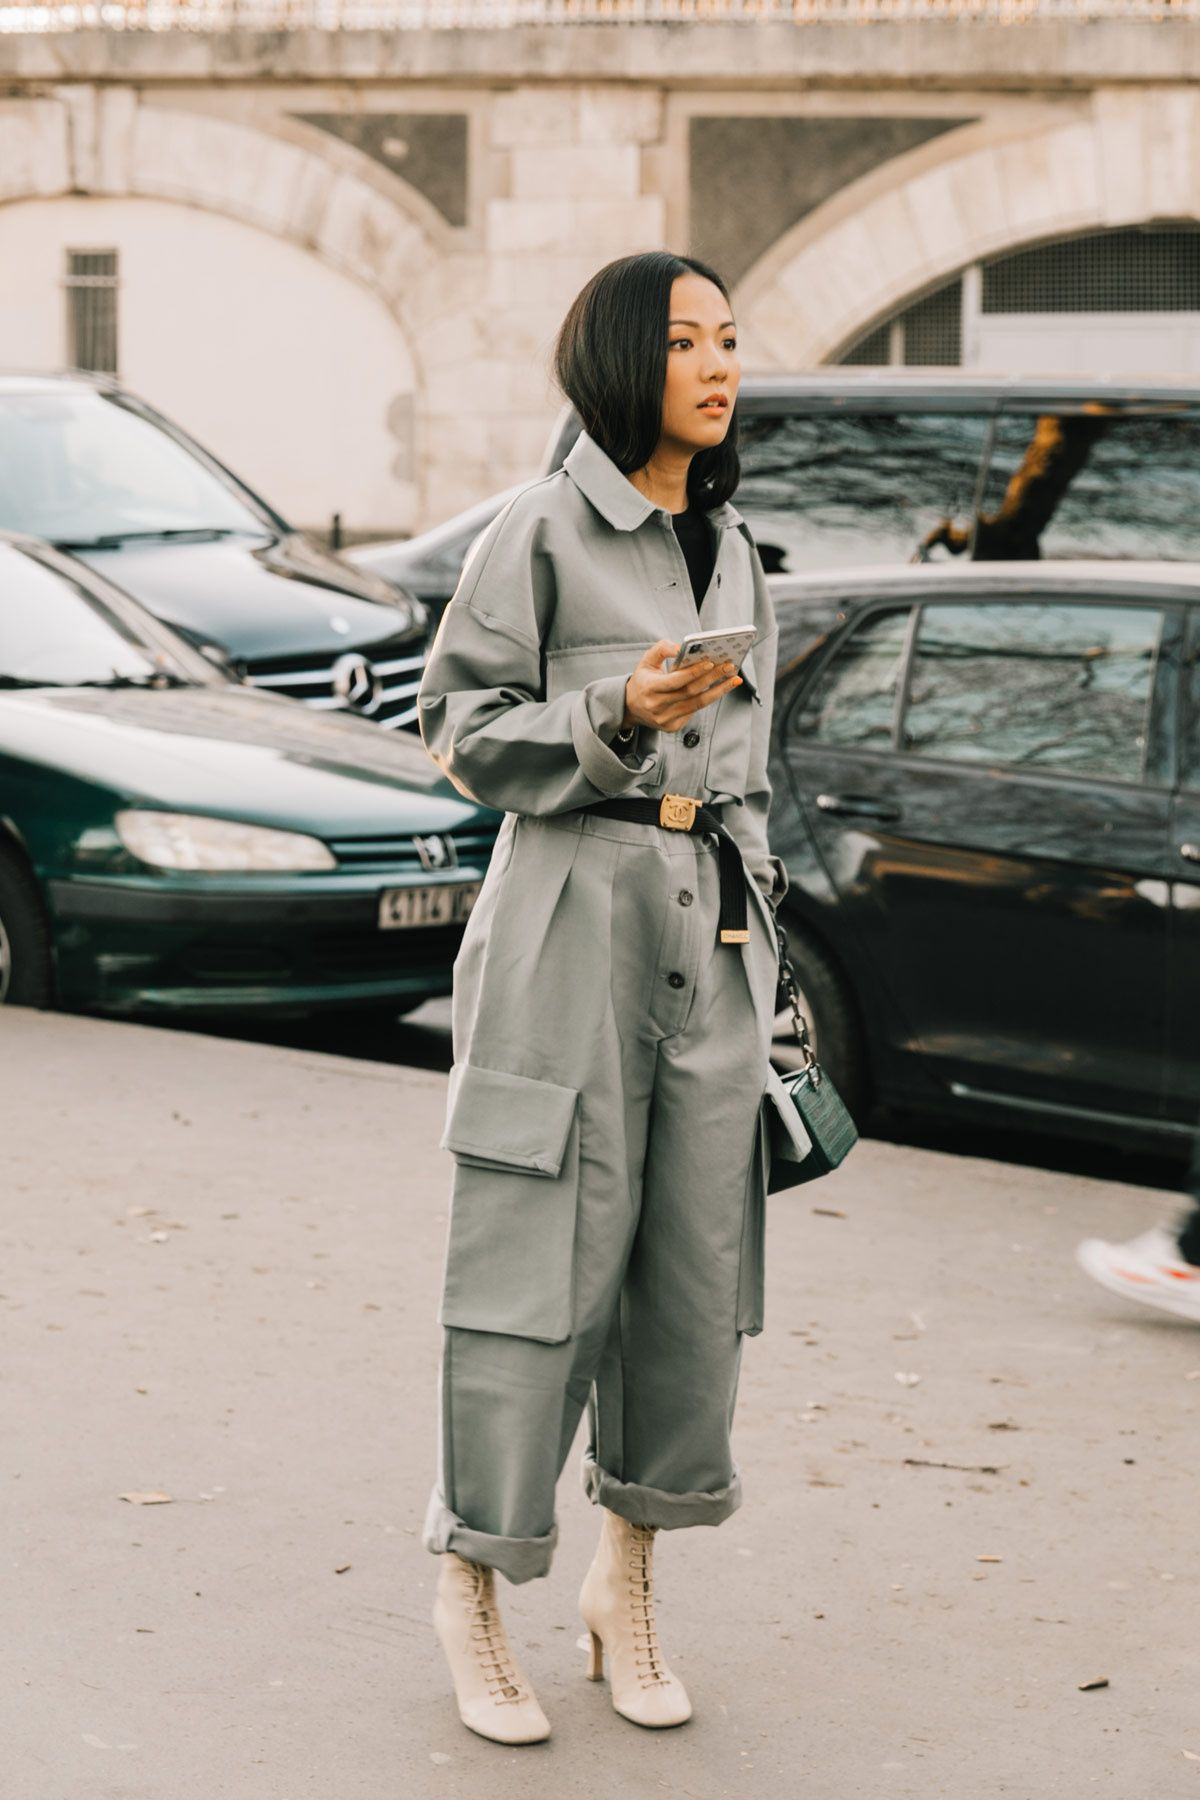 Pin by Zero Sze on Style in 2019 | Fashion, Street style ...